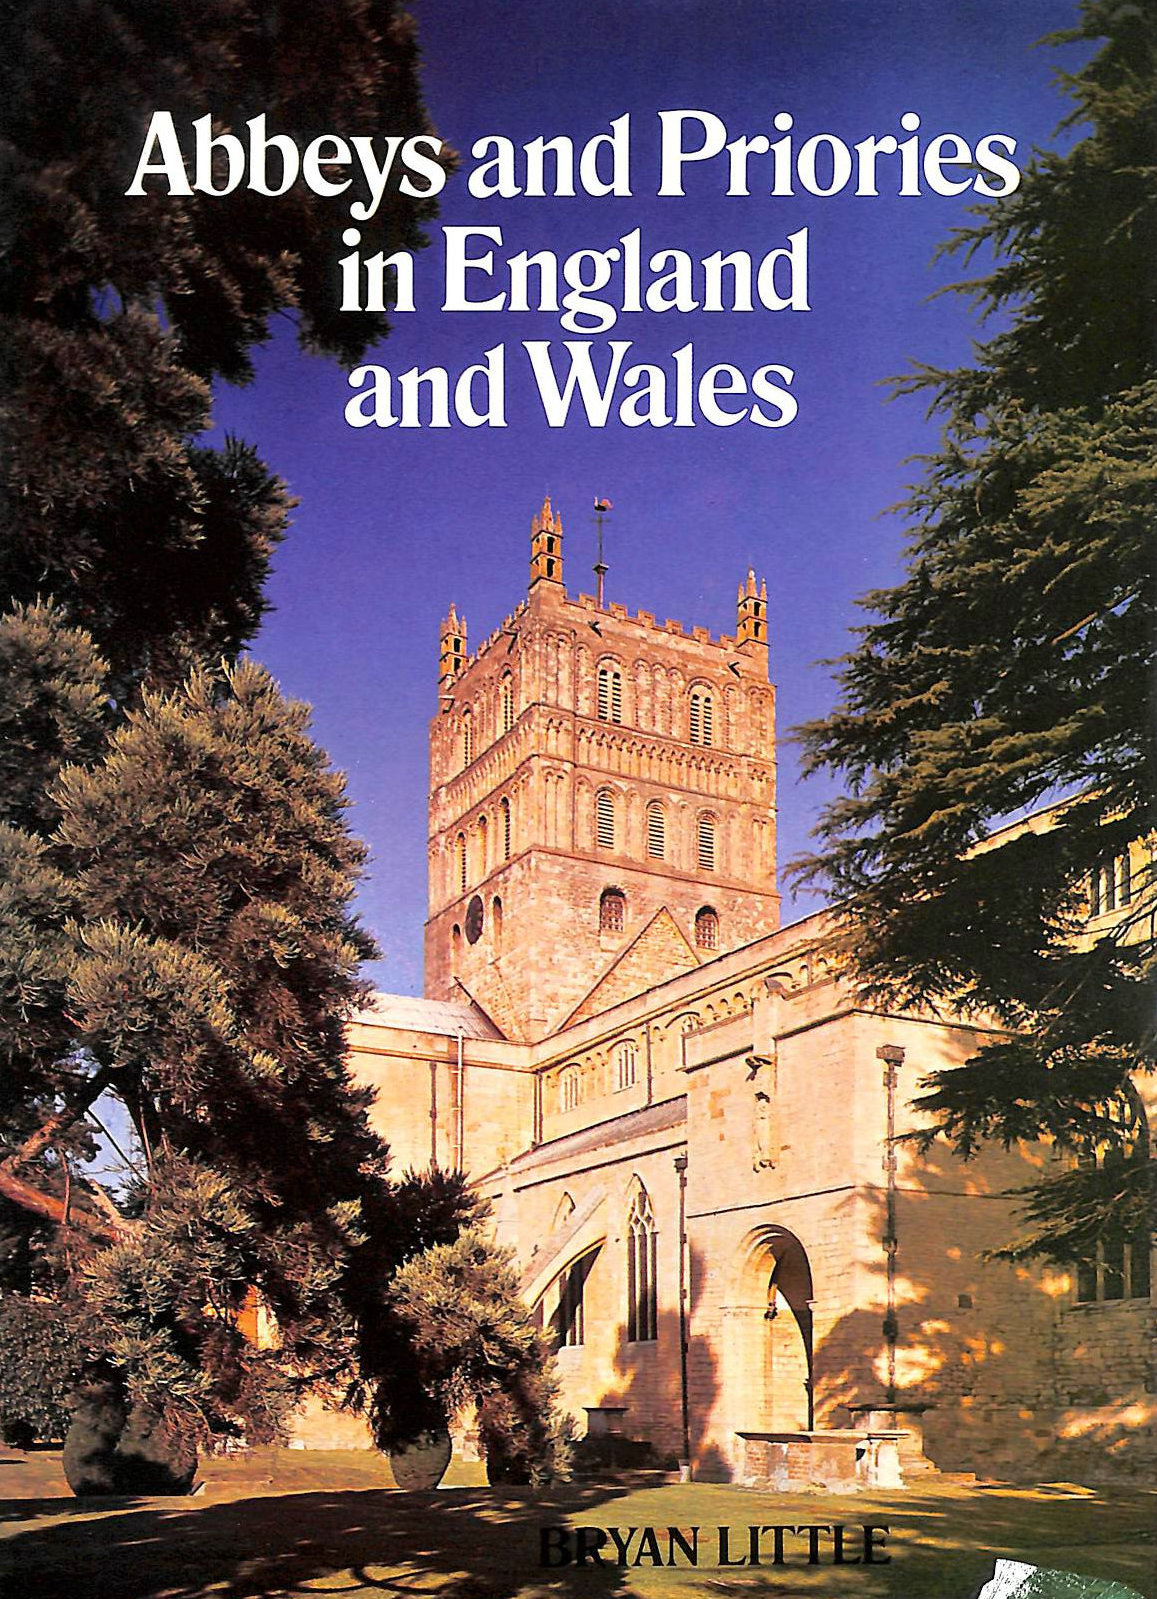 Image for Abbeys and Priories in England and Wales